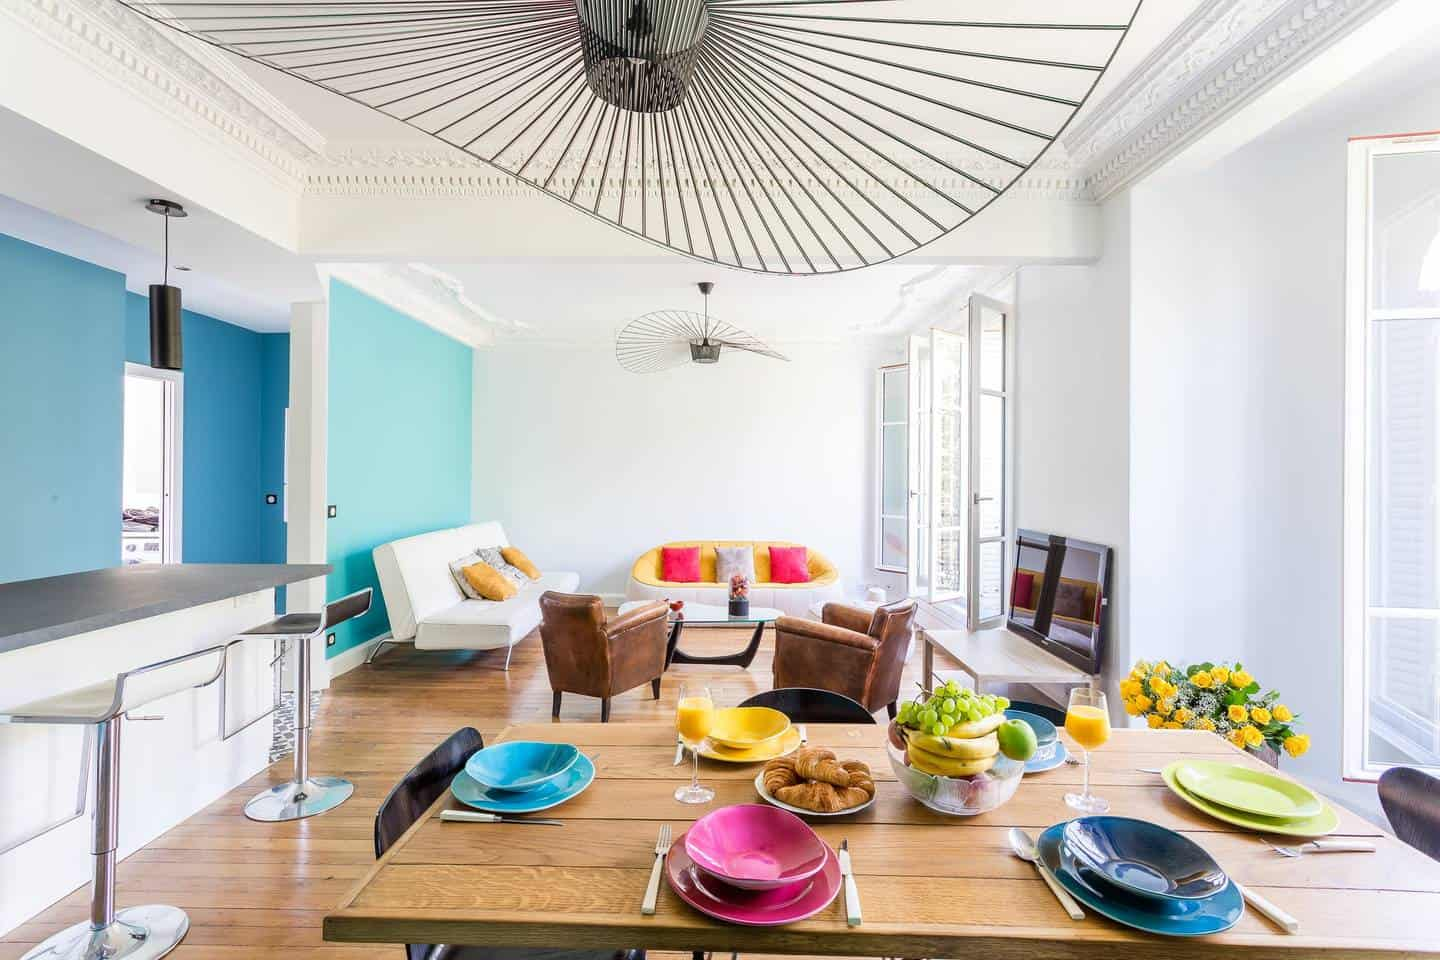 Wow! This Airbnb Paris listing near Montmartre is dreamy. You have to see the pictures!